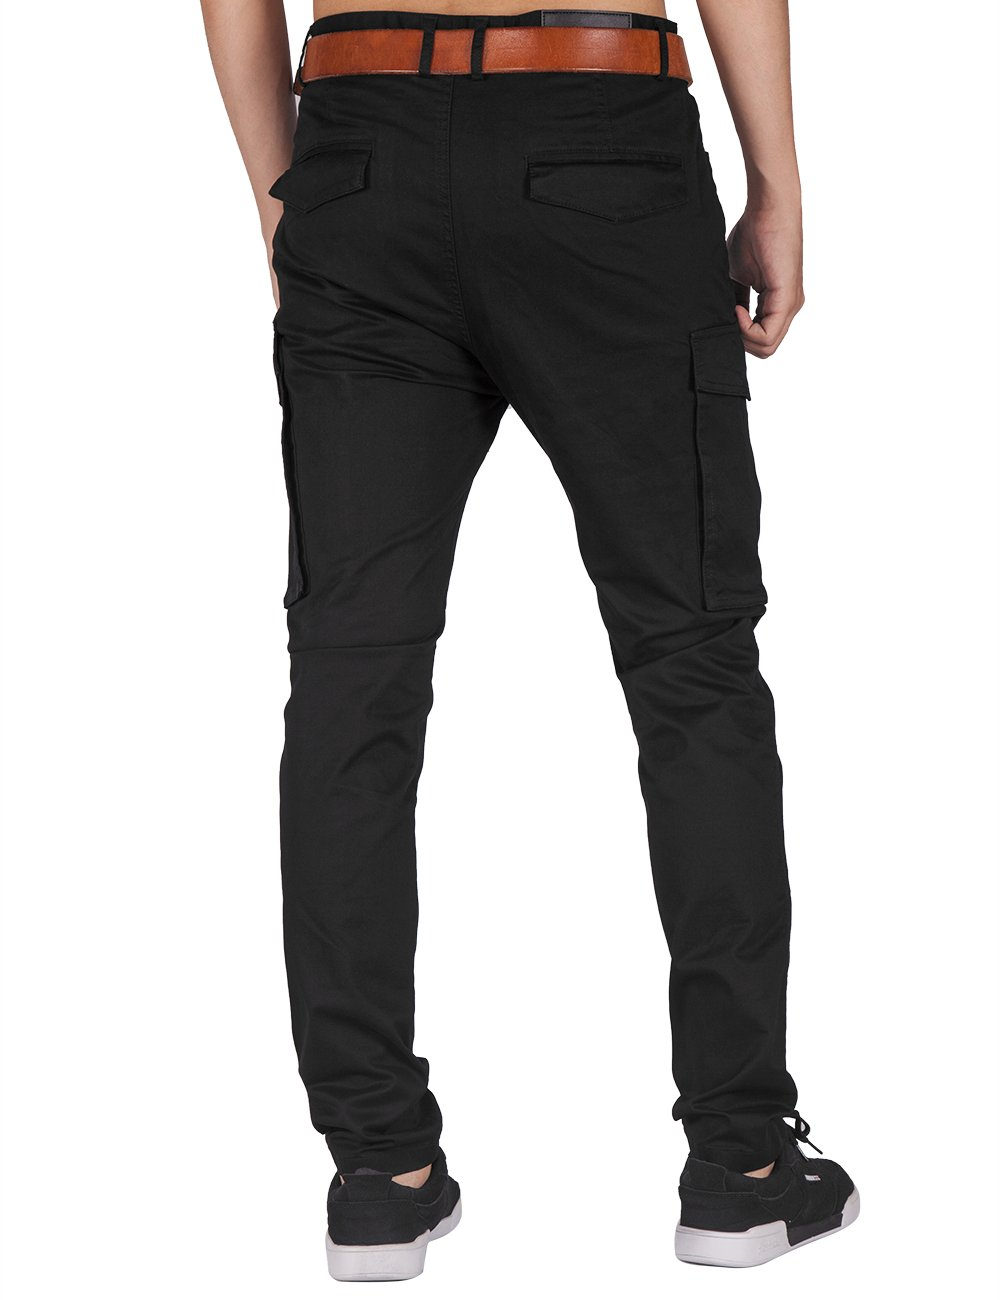 ITALY MORN Men Chino Cargo Jogger Pants Casual Twill Khakis Slim fit Black (S, Black) by ITALY MORN (Image #5)